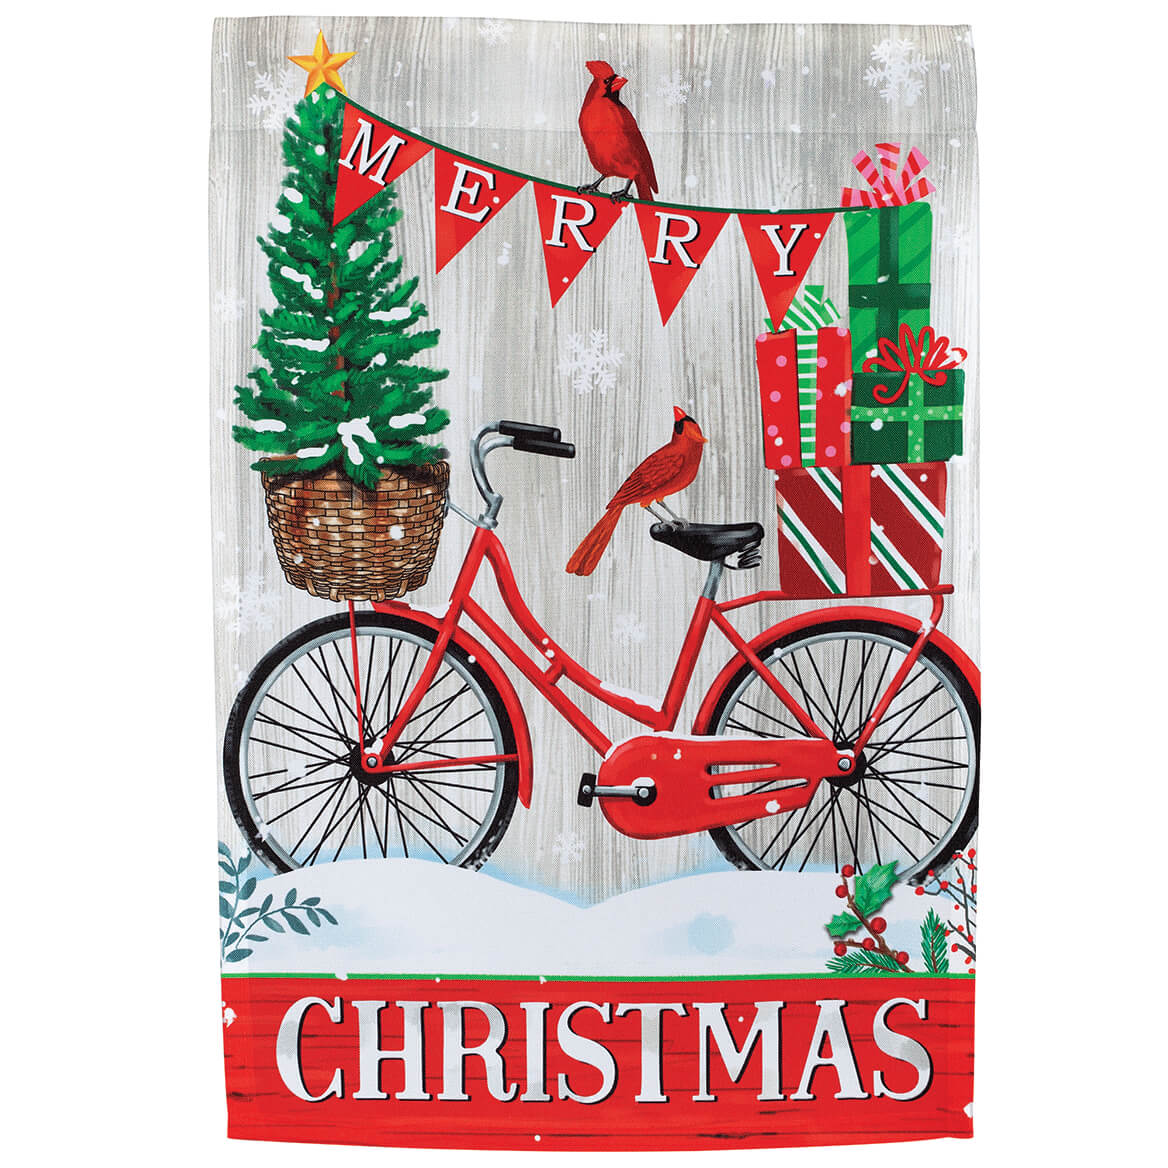 Merry Christmas Bike Garden Flag-370660